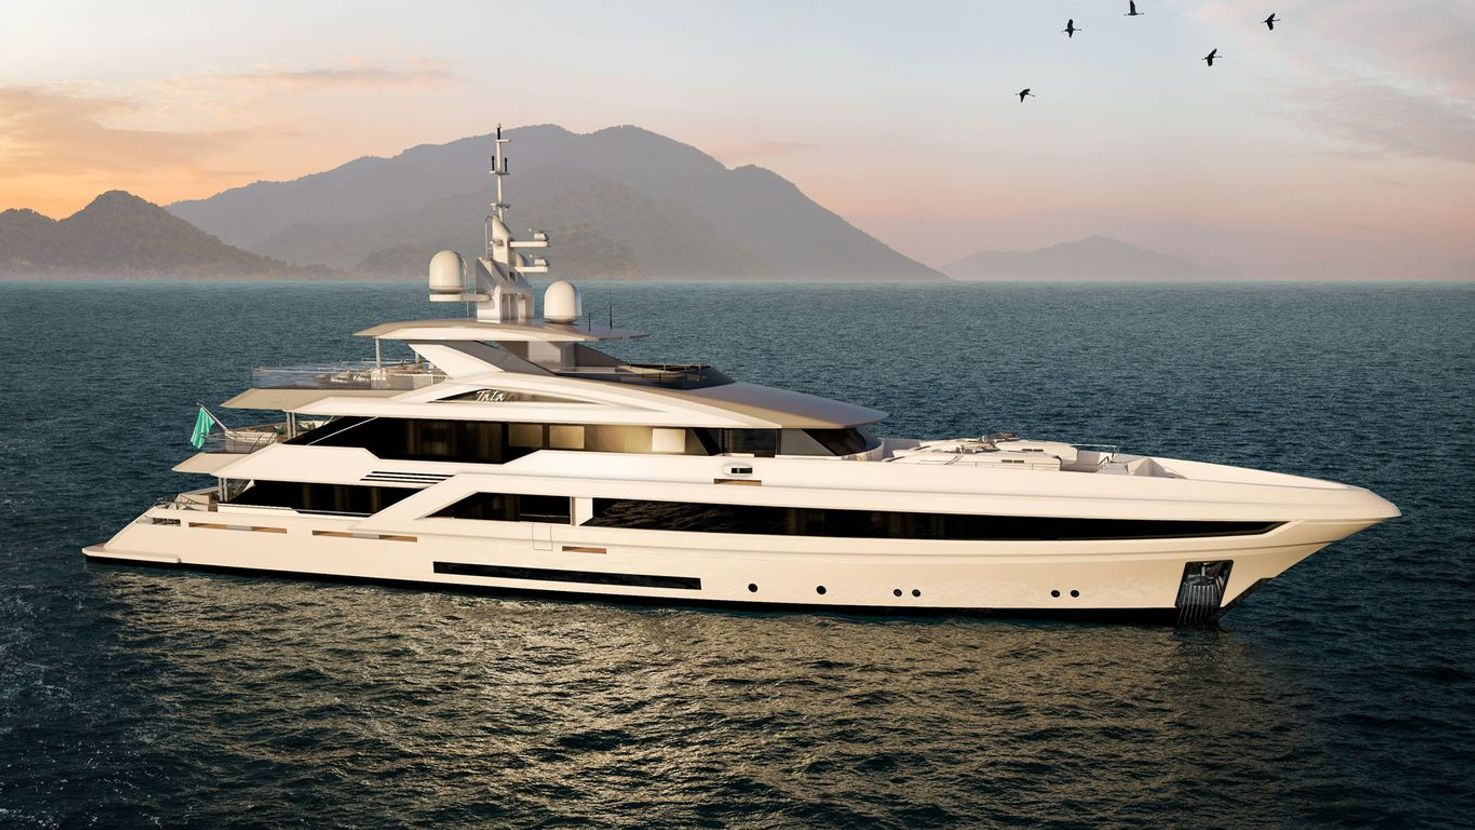 Superyacht Project Tala on water